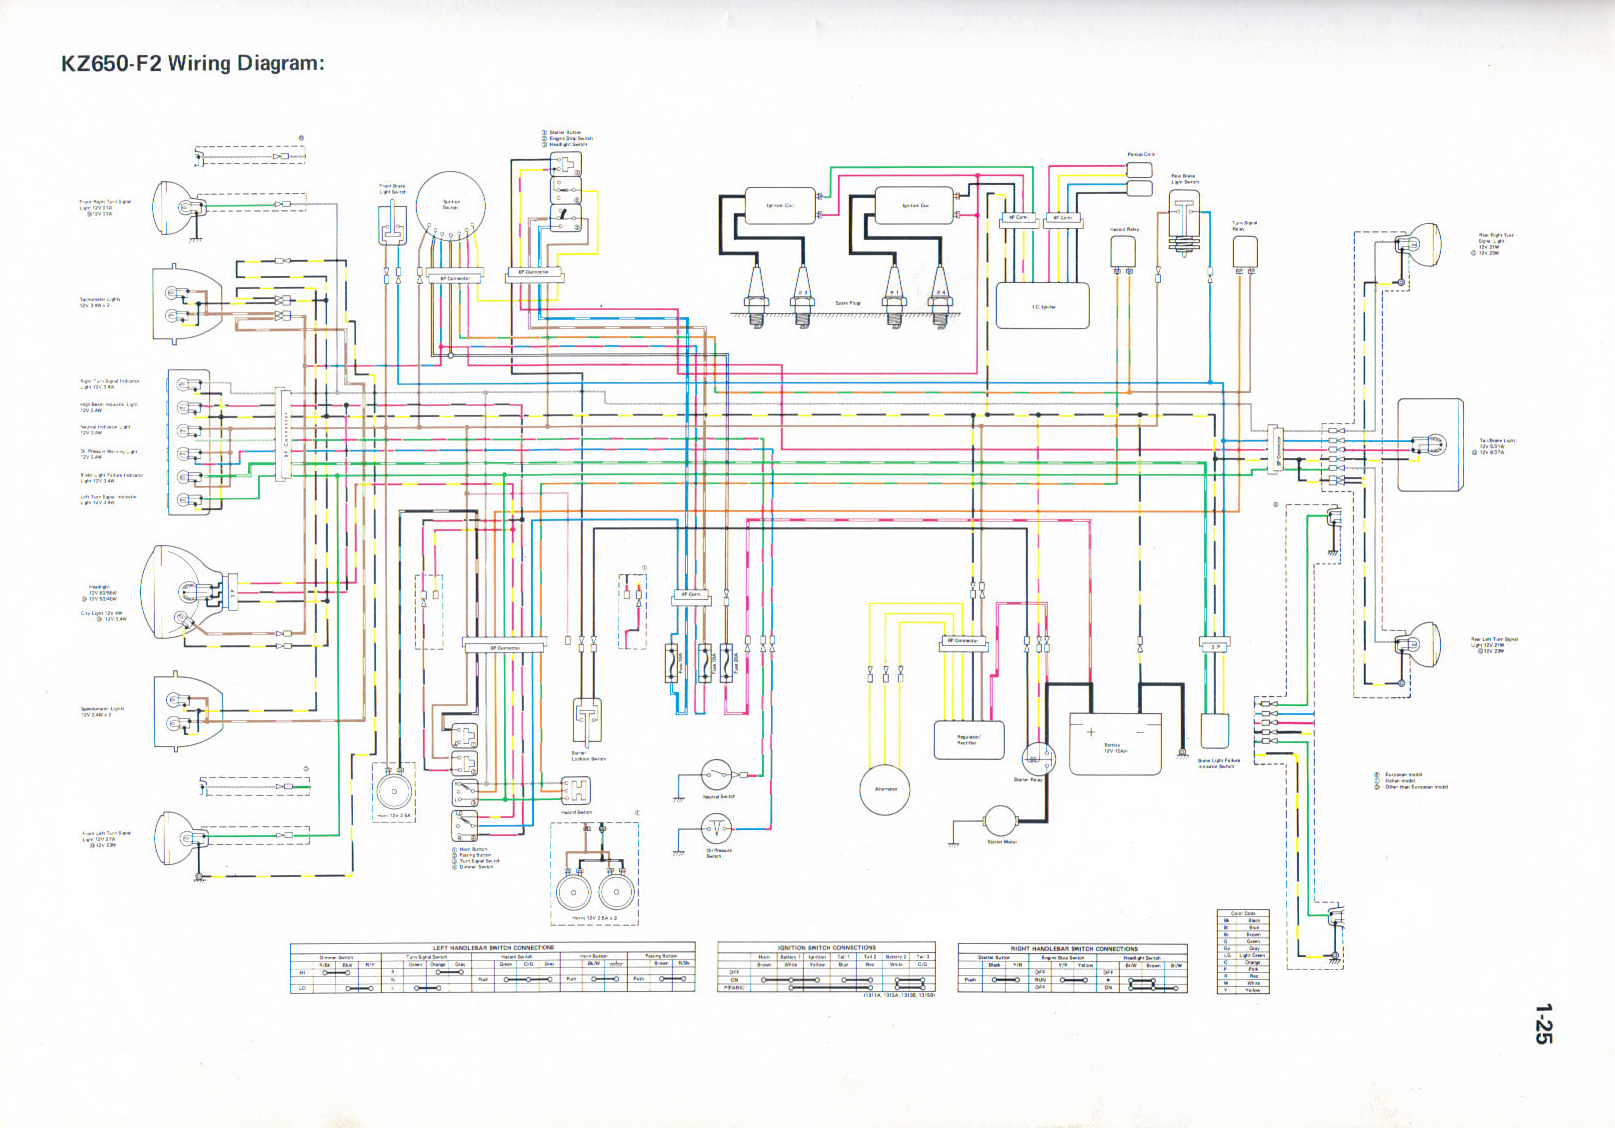 kz wiring harness diagram kz database wiring diagram kz650 wiring harness diagram kz650 database wiring diagram images